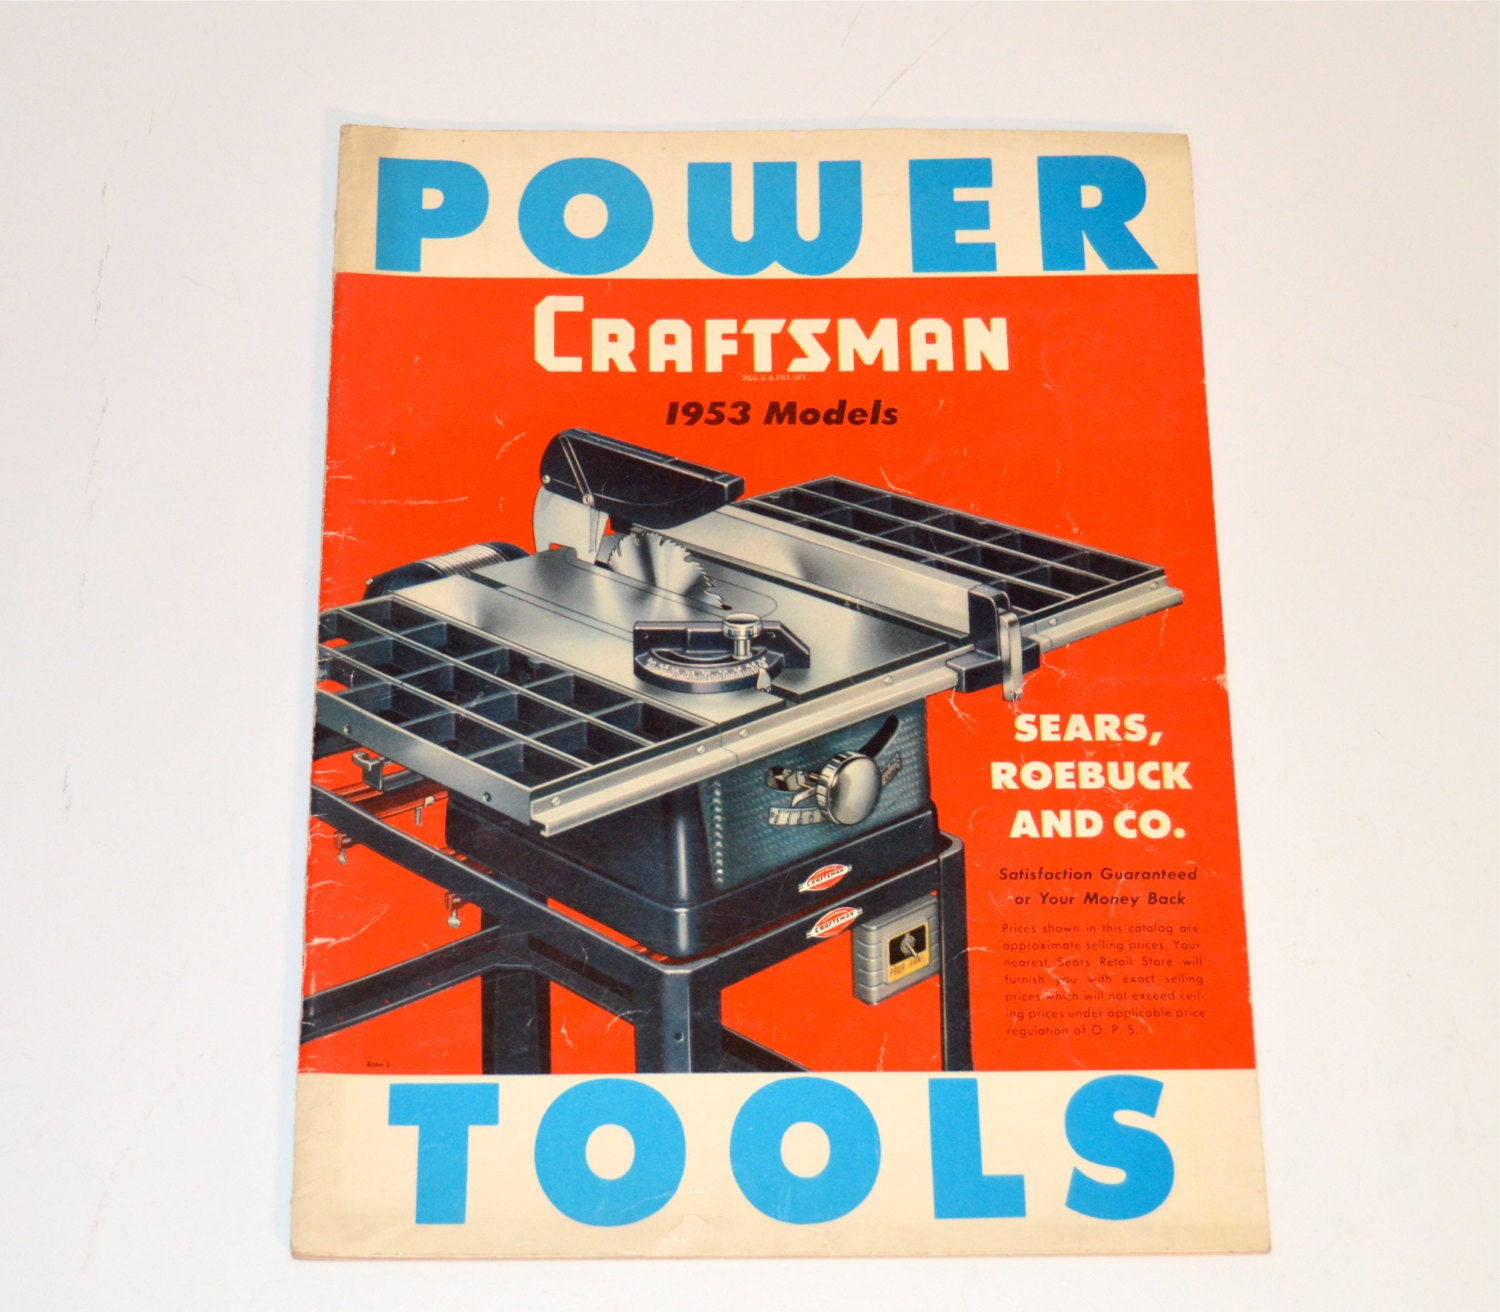 New Sears return policy violates personal privacy and is a security risk I just tried to return a hand tool under the lifetime warranty that has prompted me to solely purchase Sears Craftsman products for years.